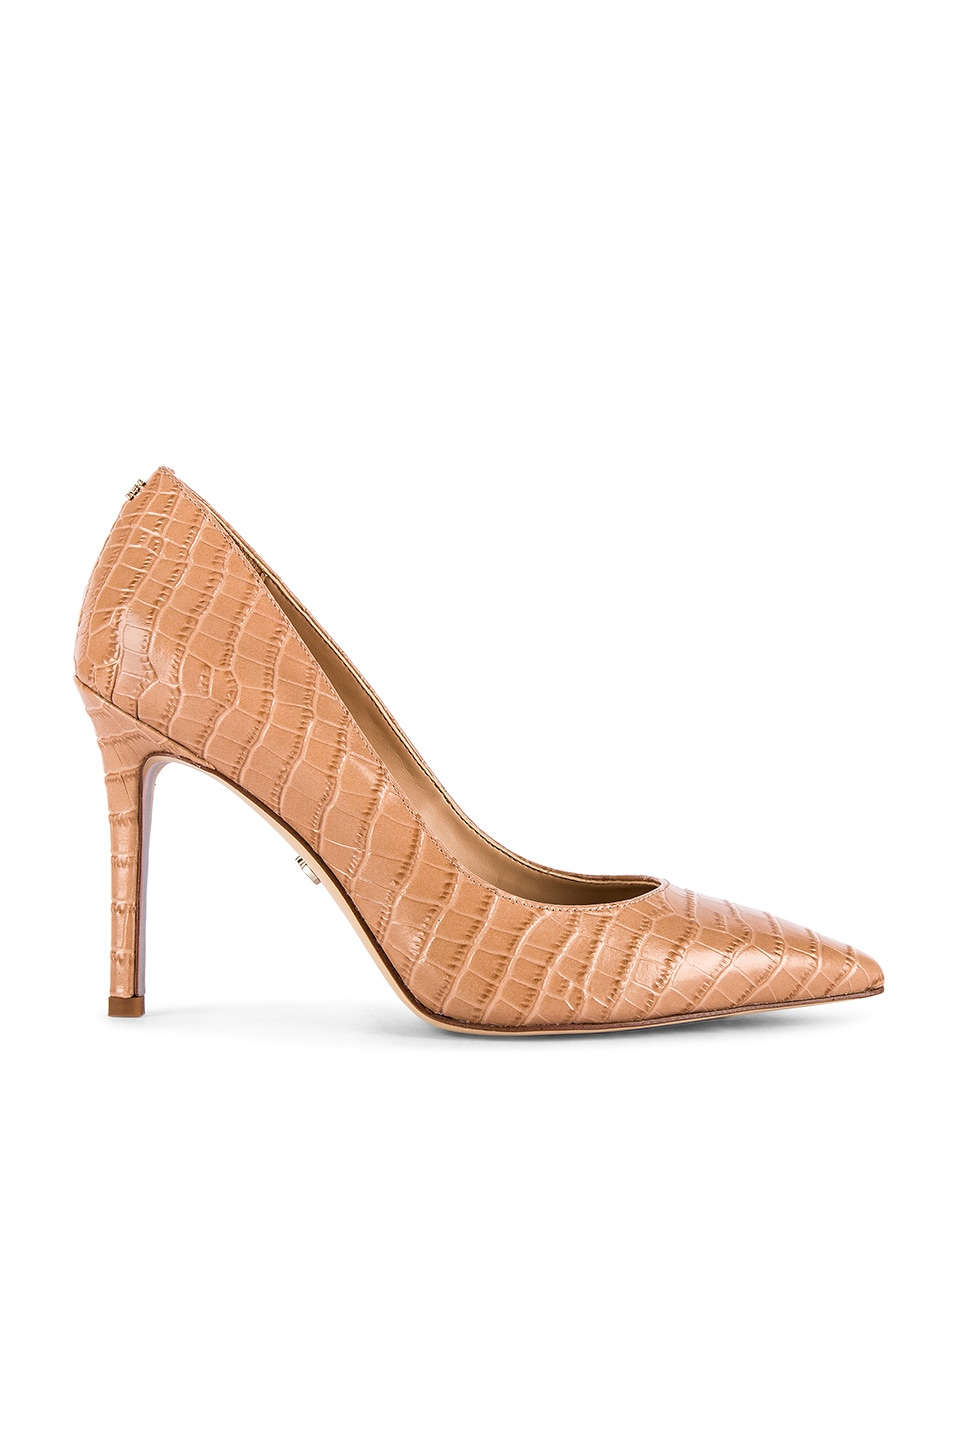 Sam Edelman Hazel Pump in Toasted Almond Croco